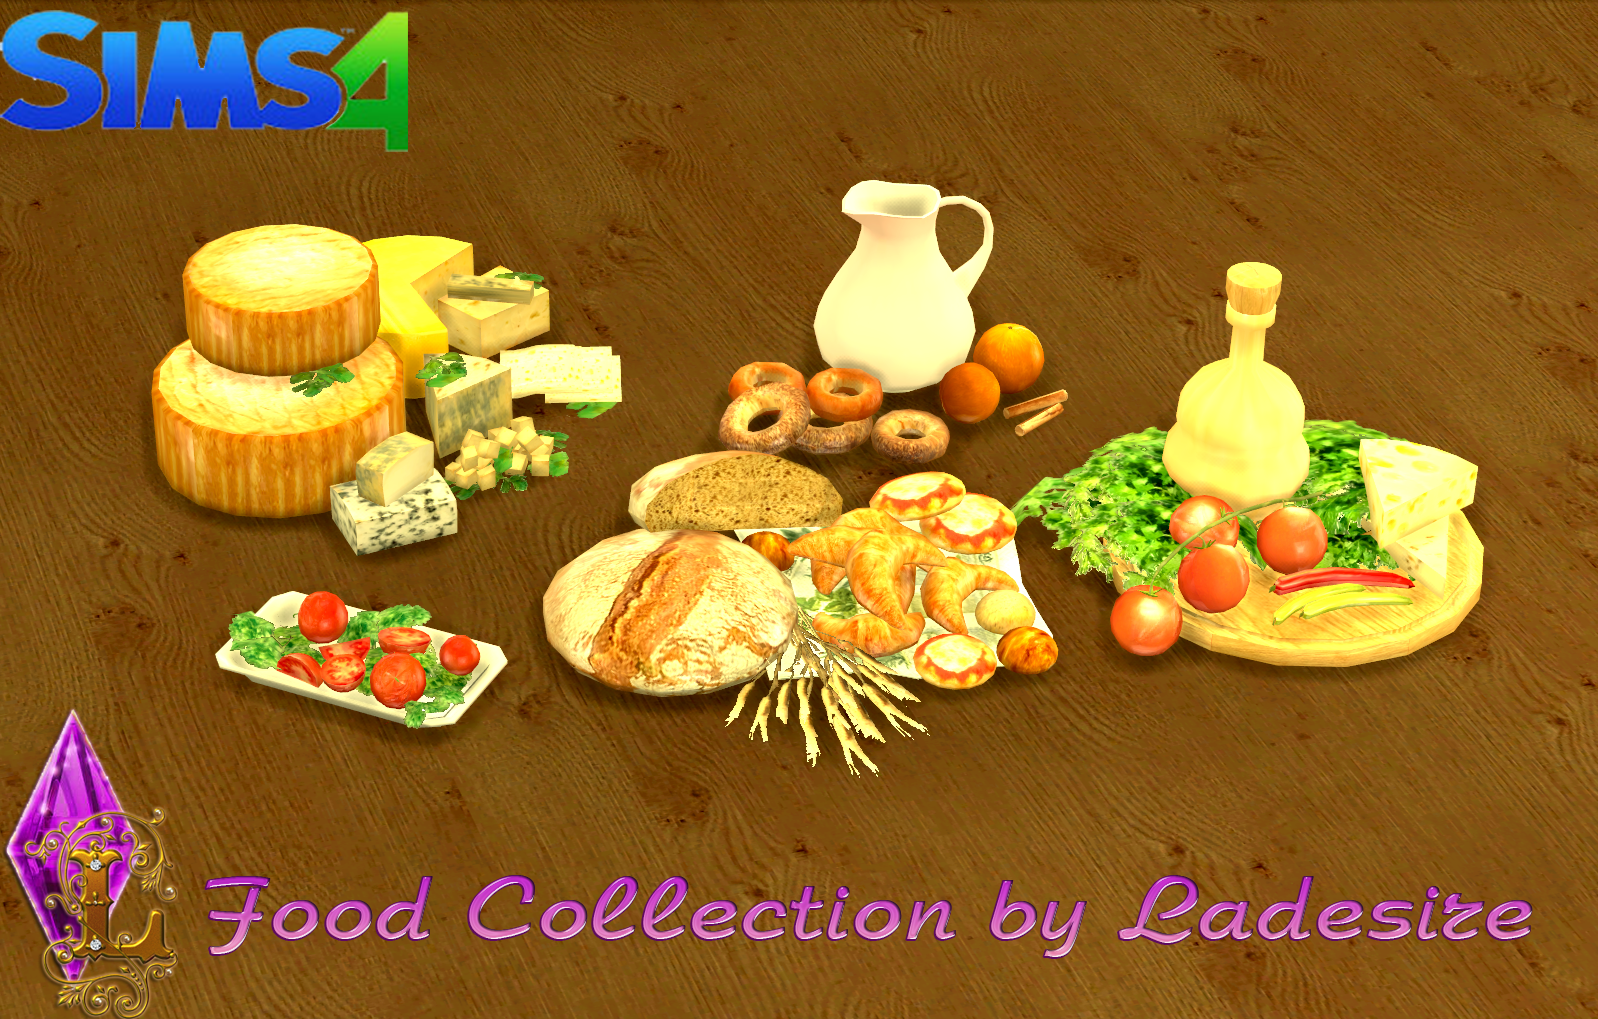 The Sims 4 | Food Collection by Ladesire | buy mode deco kitchen clutter food new mesh